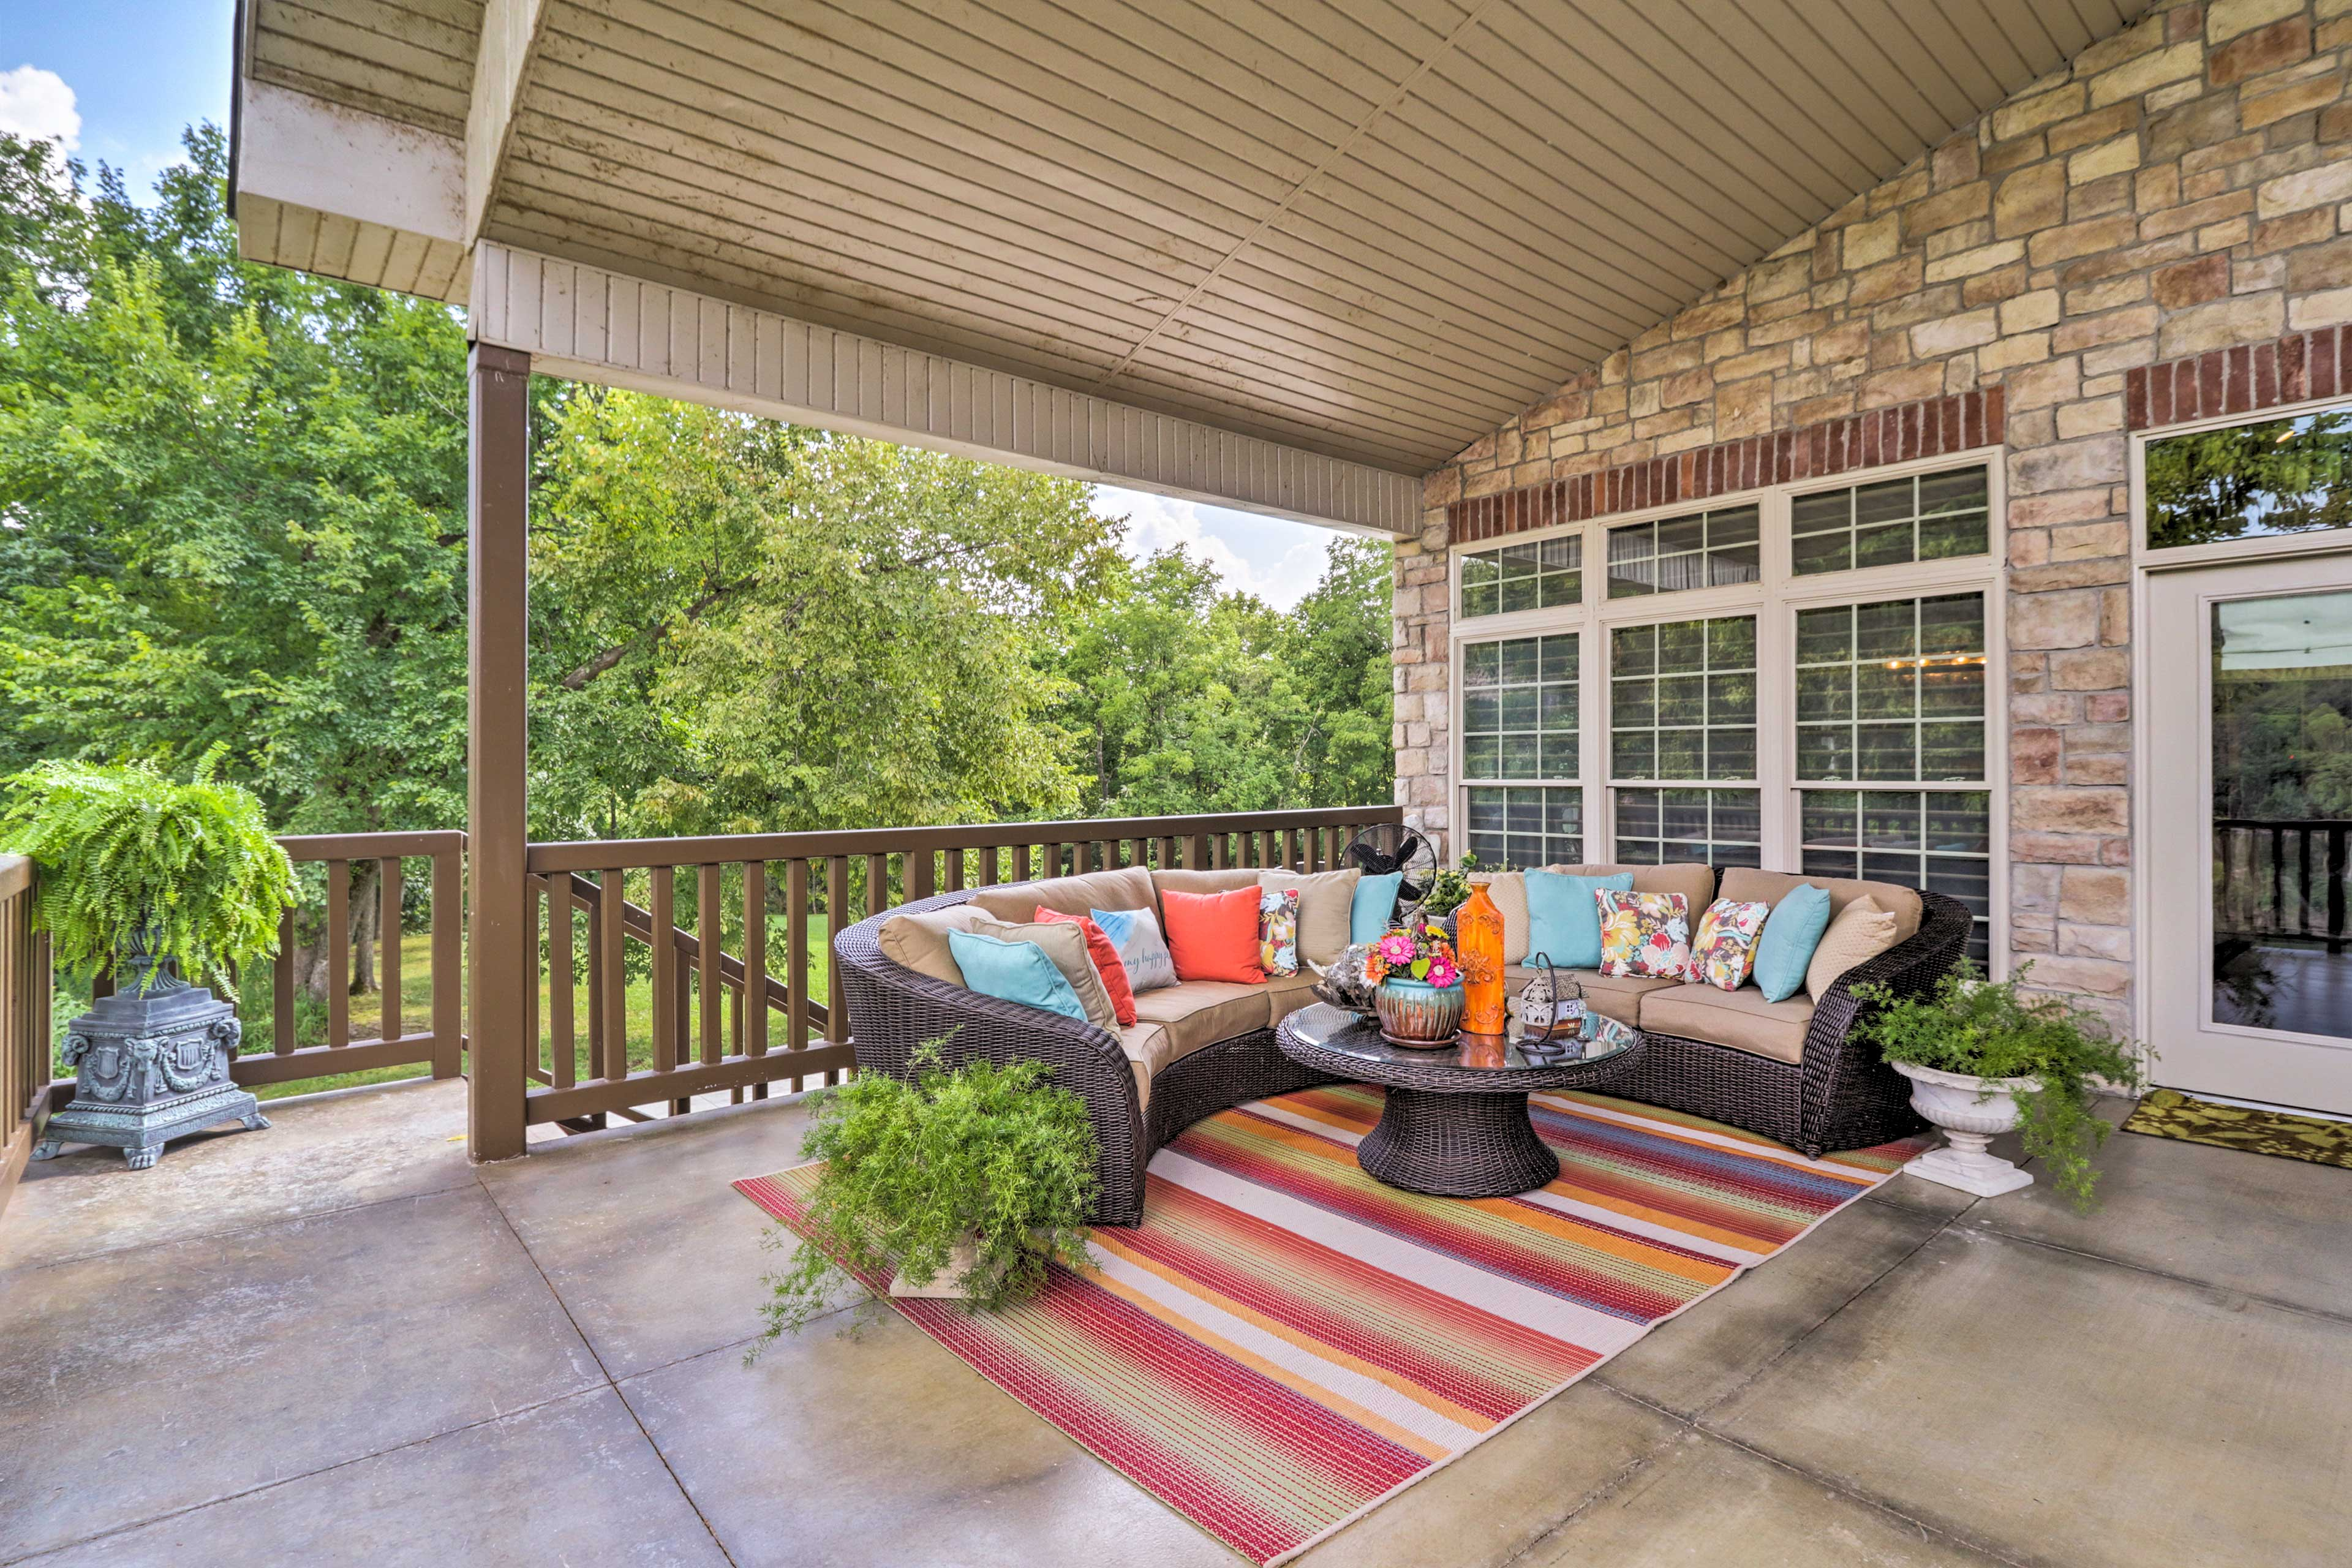 Grab some fresh air while you relax on the wicker furnishings on the deck.